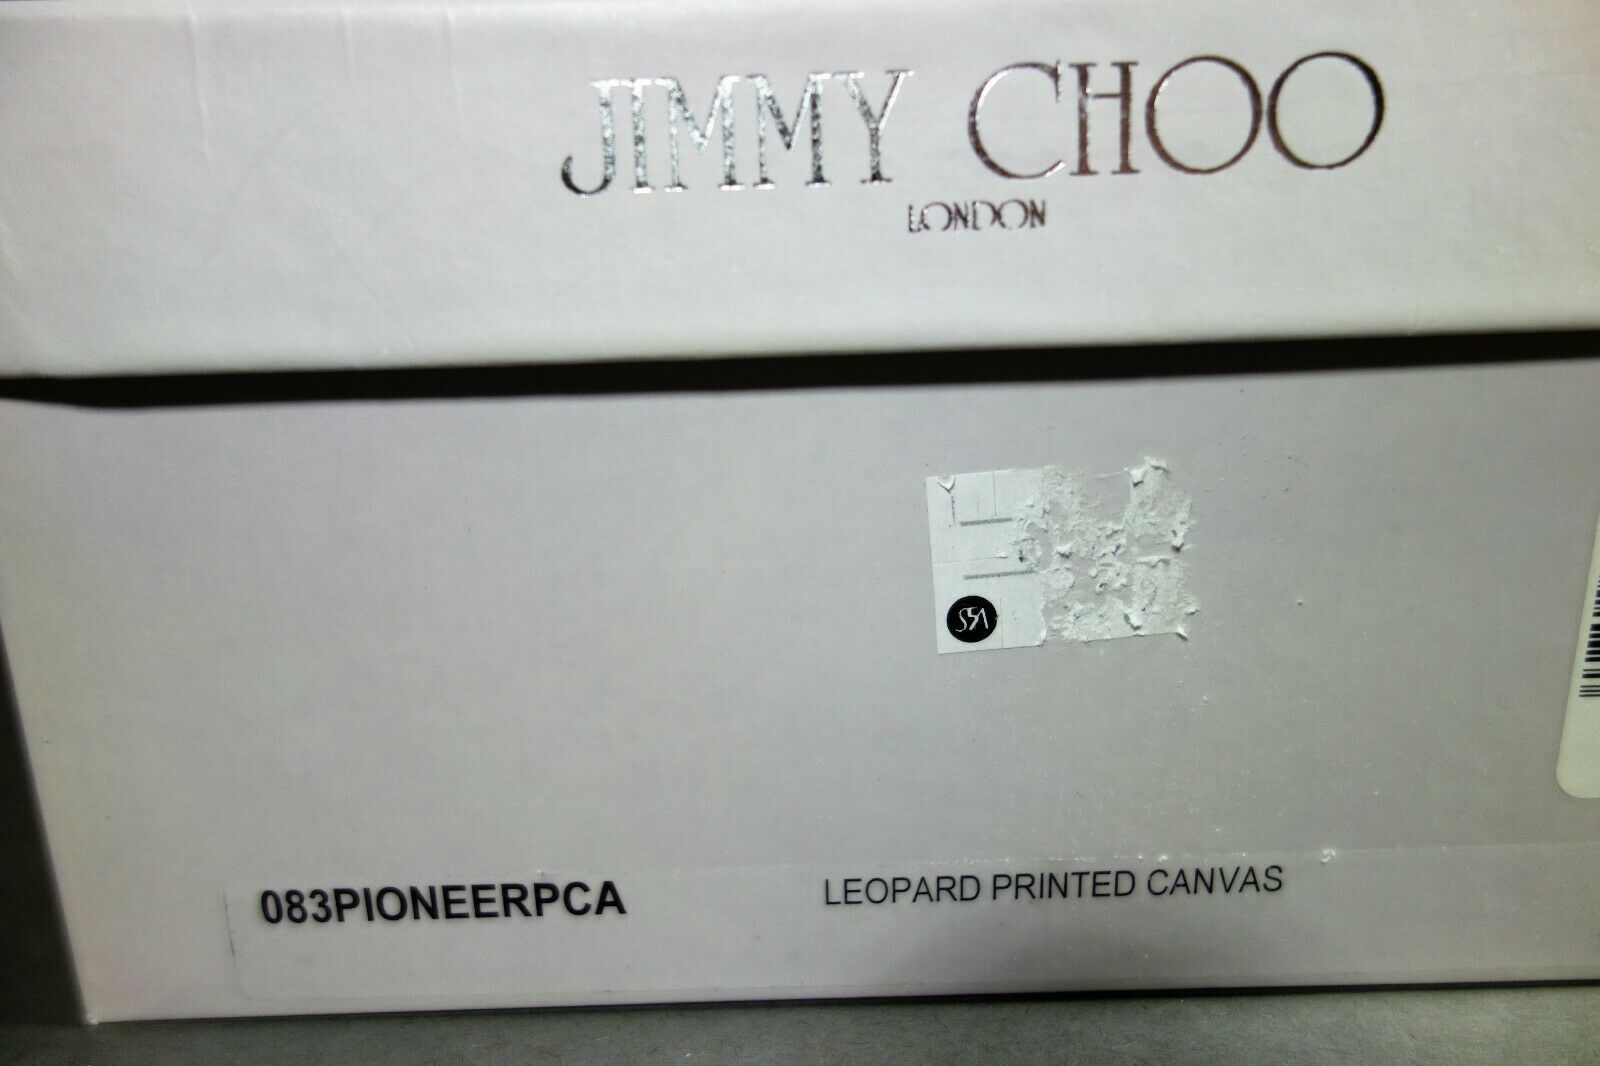 Jimmy Choo 36 Pioneer Leopard Print Canvas Dark Brown Leather Sandals Shoes NEW image 12